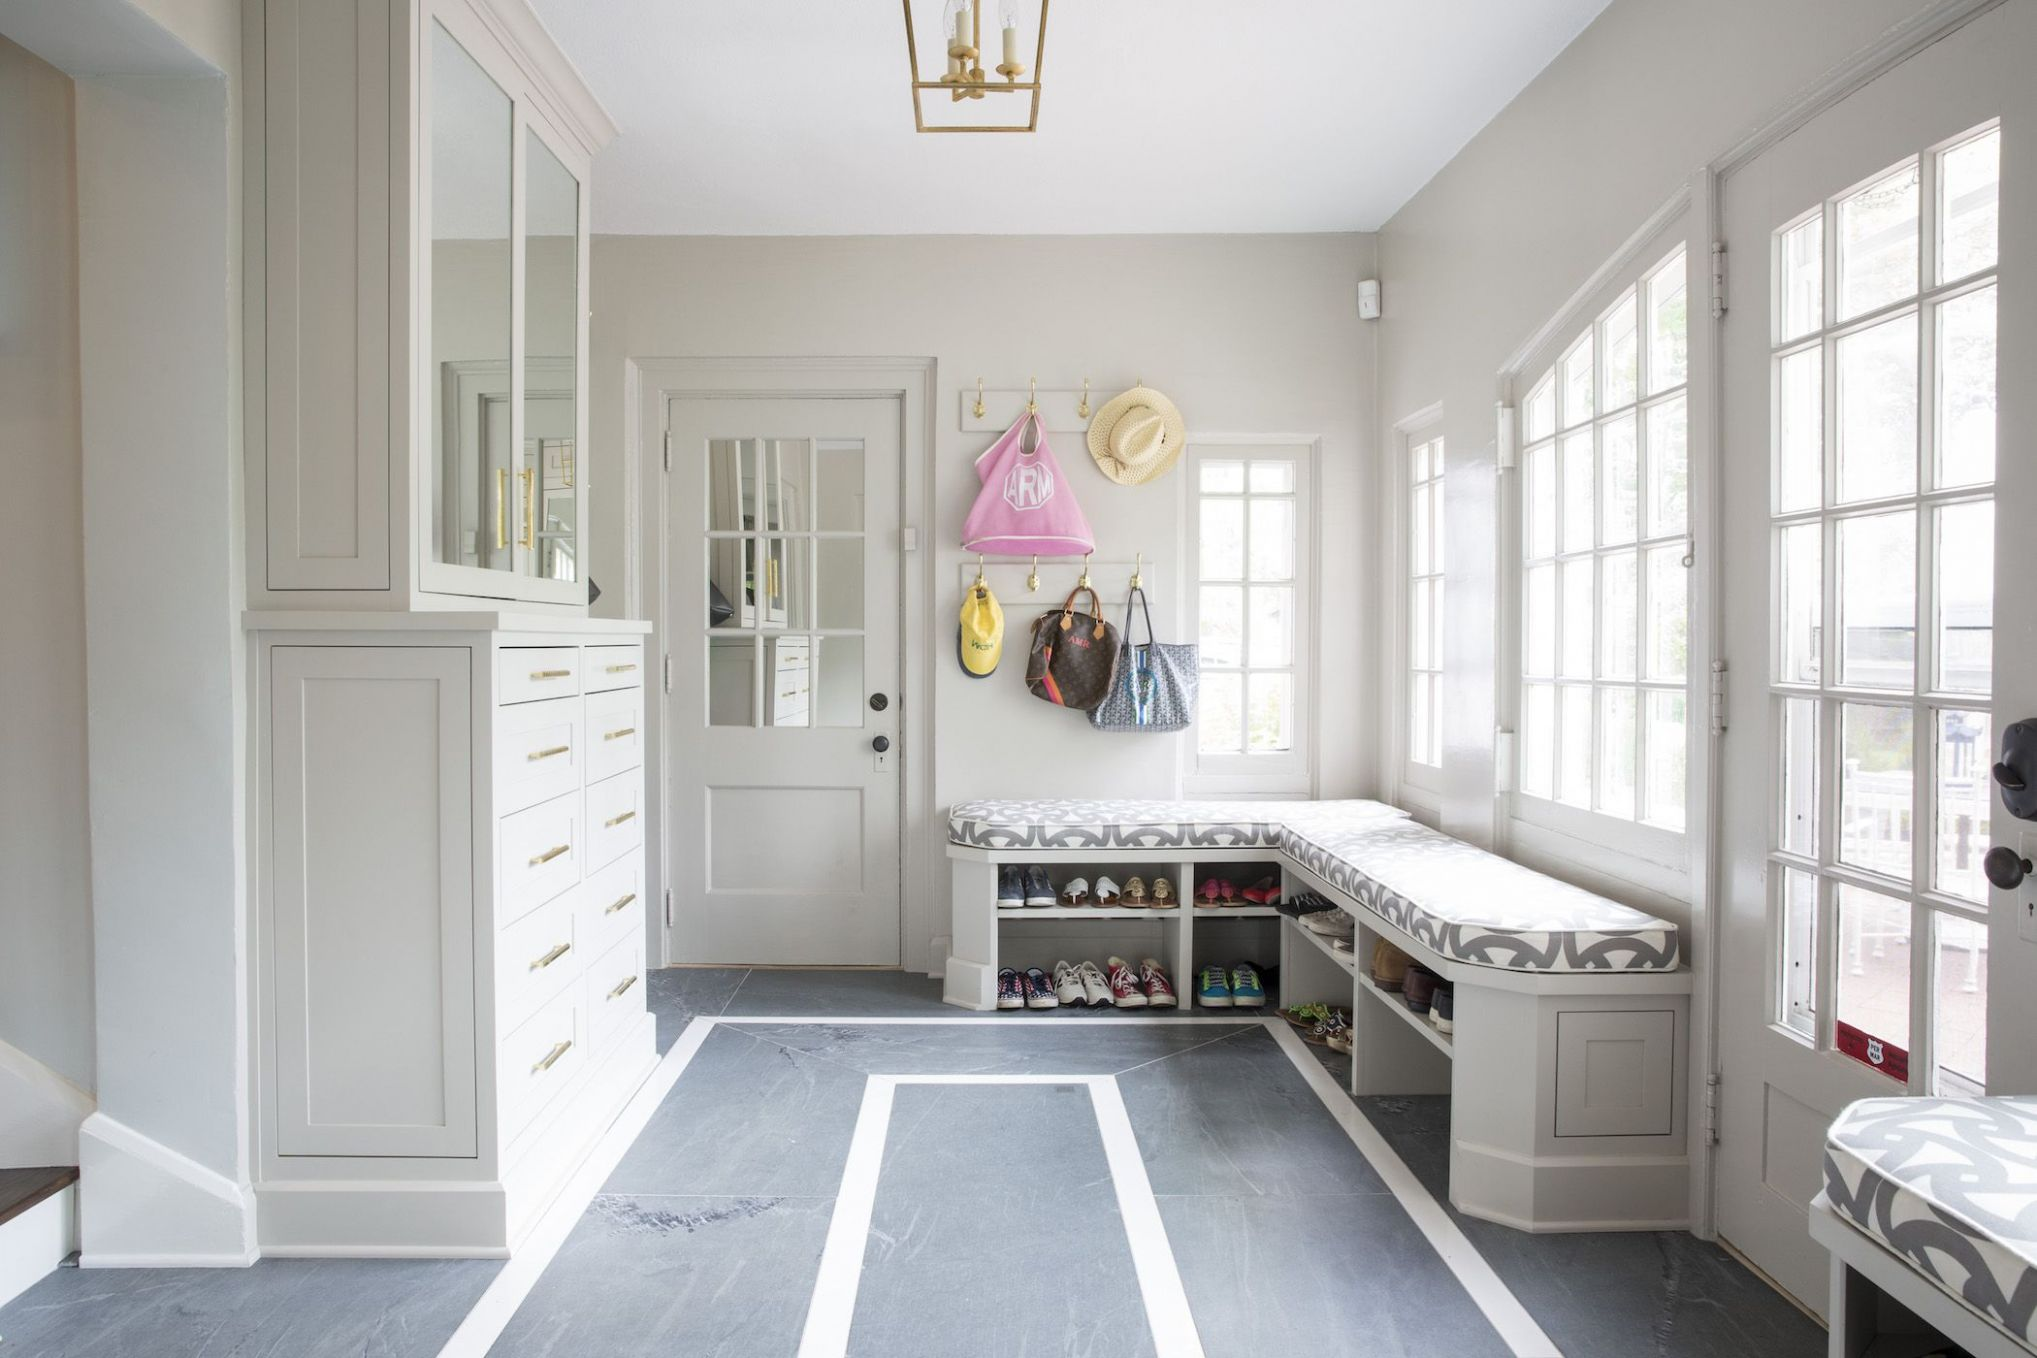 11 Smart Mudroom Ideas - Stylish Mudroom Benches & Storage - sunroom mudroom ideas